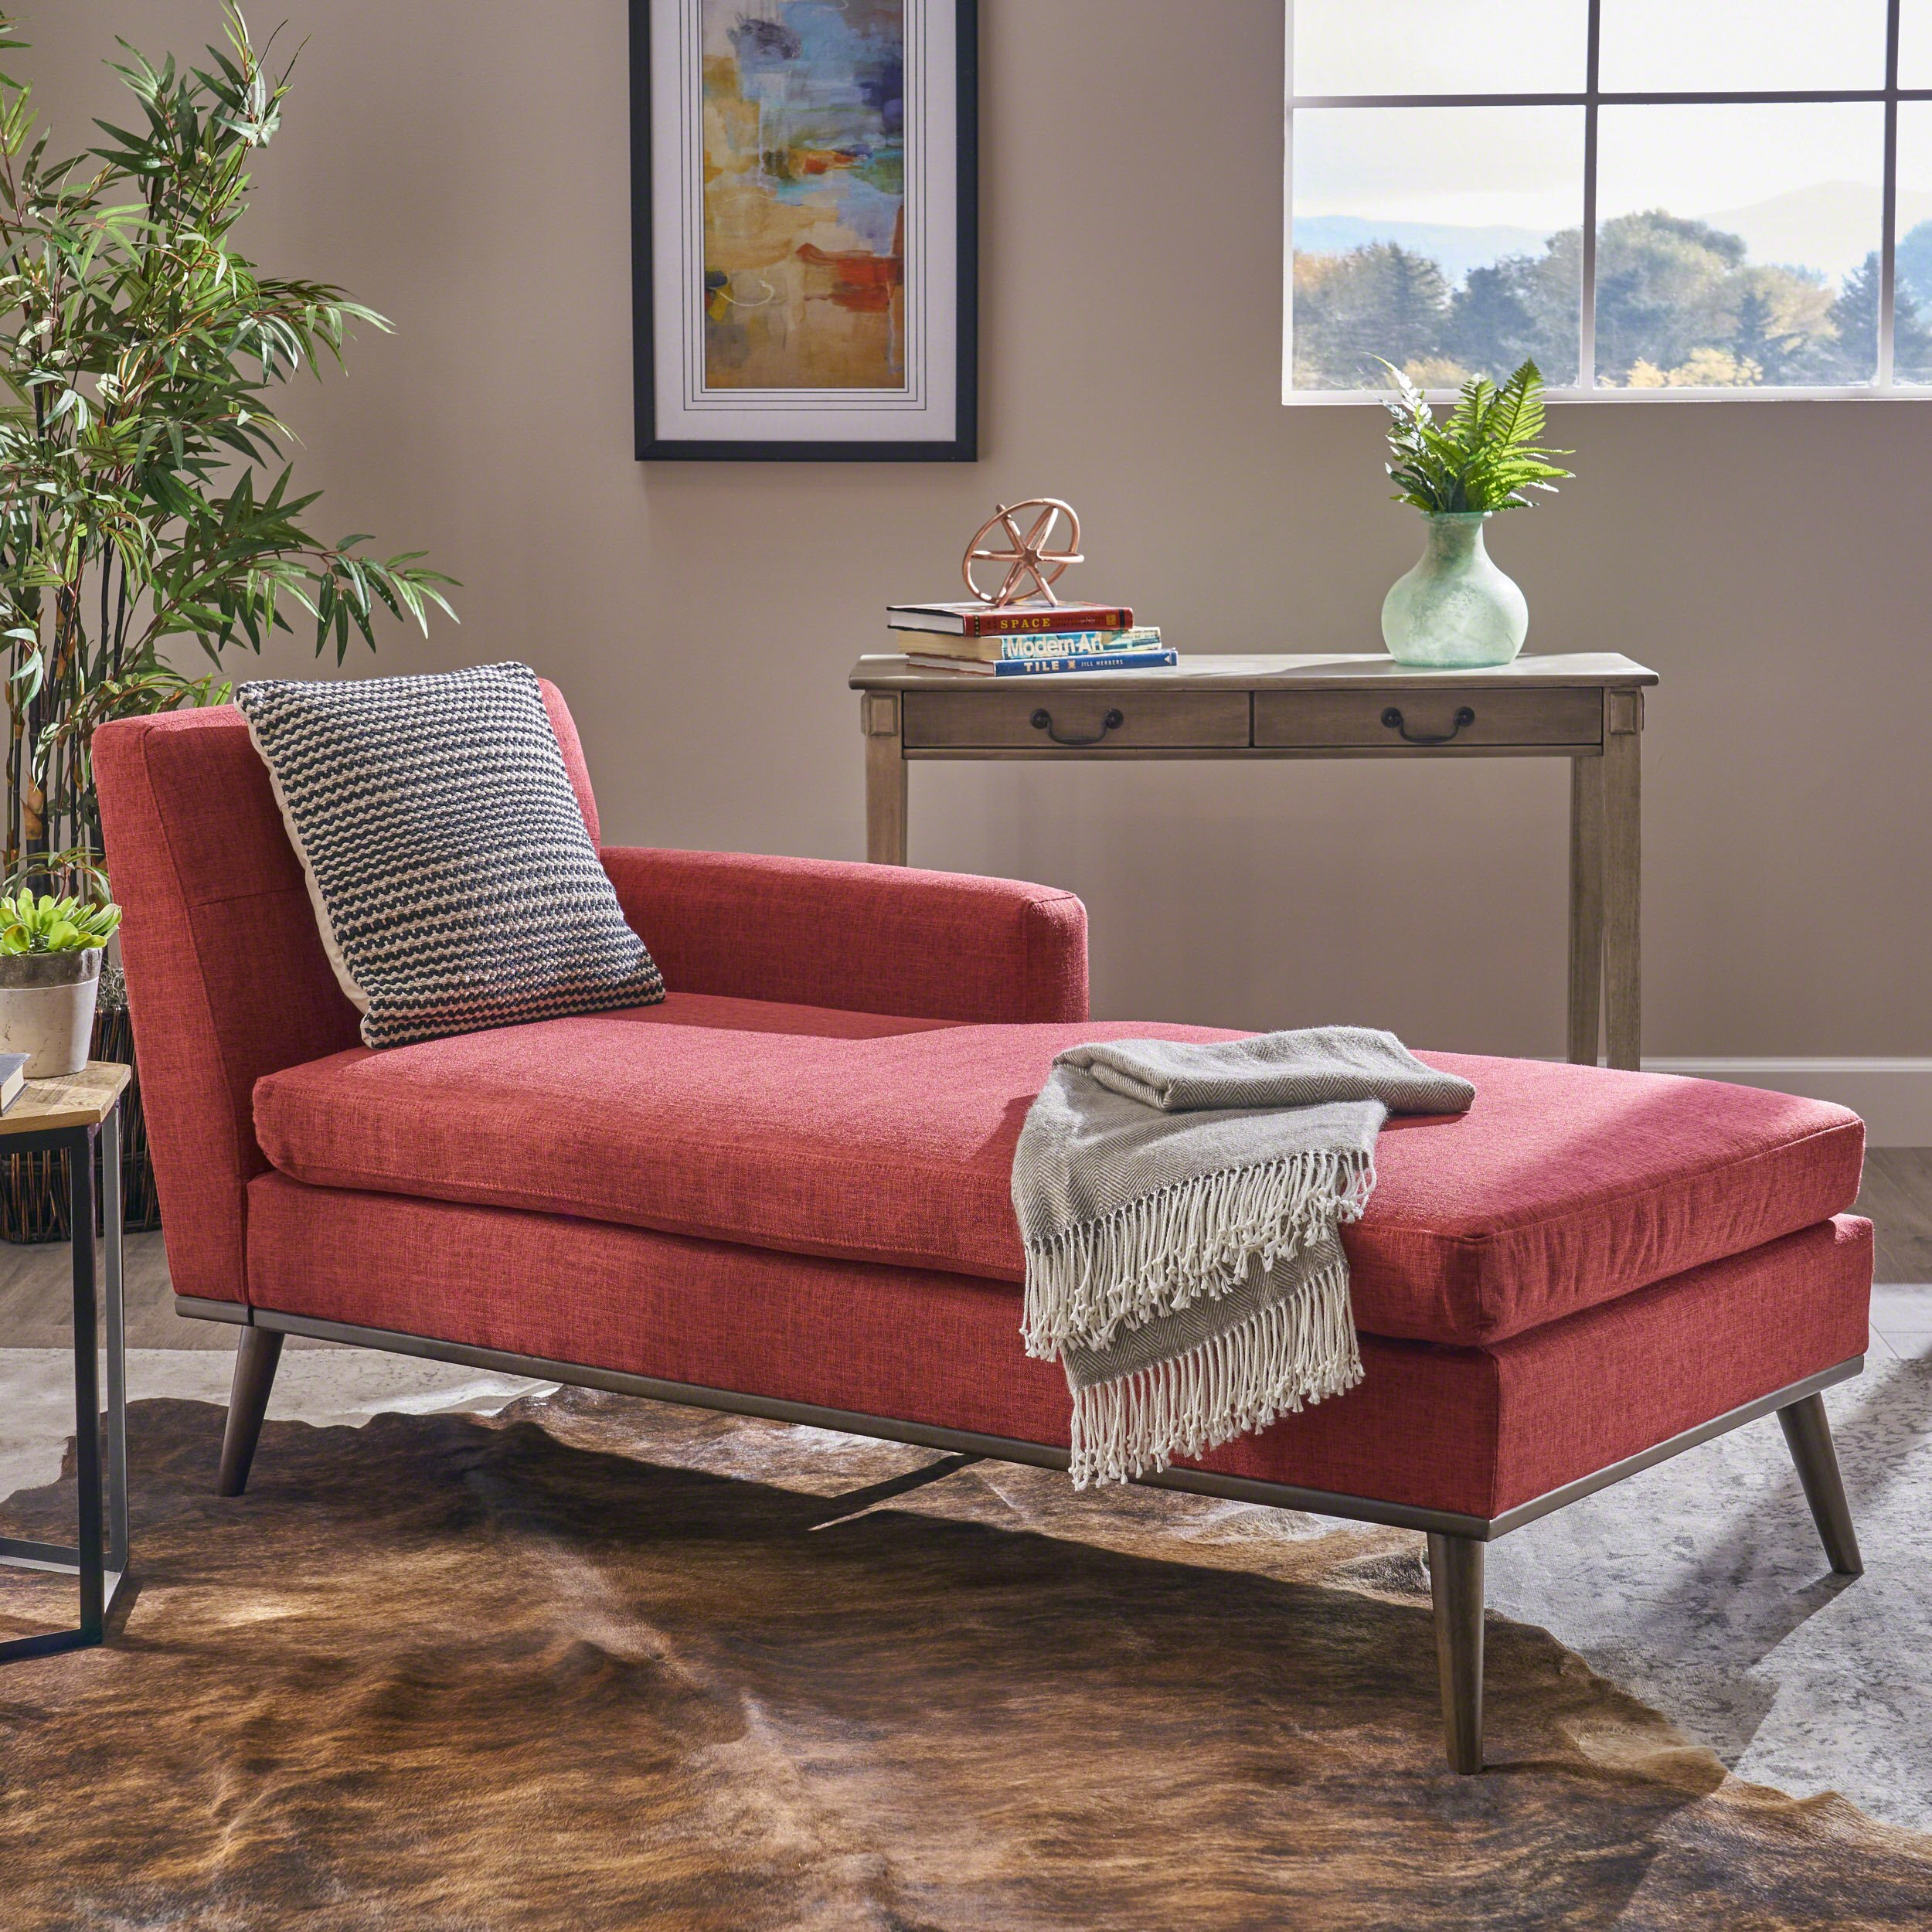 Christopher Knight Home Sophia Mid Century Modern Fabric Chaise Lounge, Red/Walnut by Christopher Knight Home